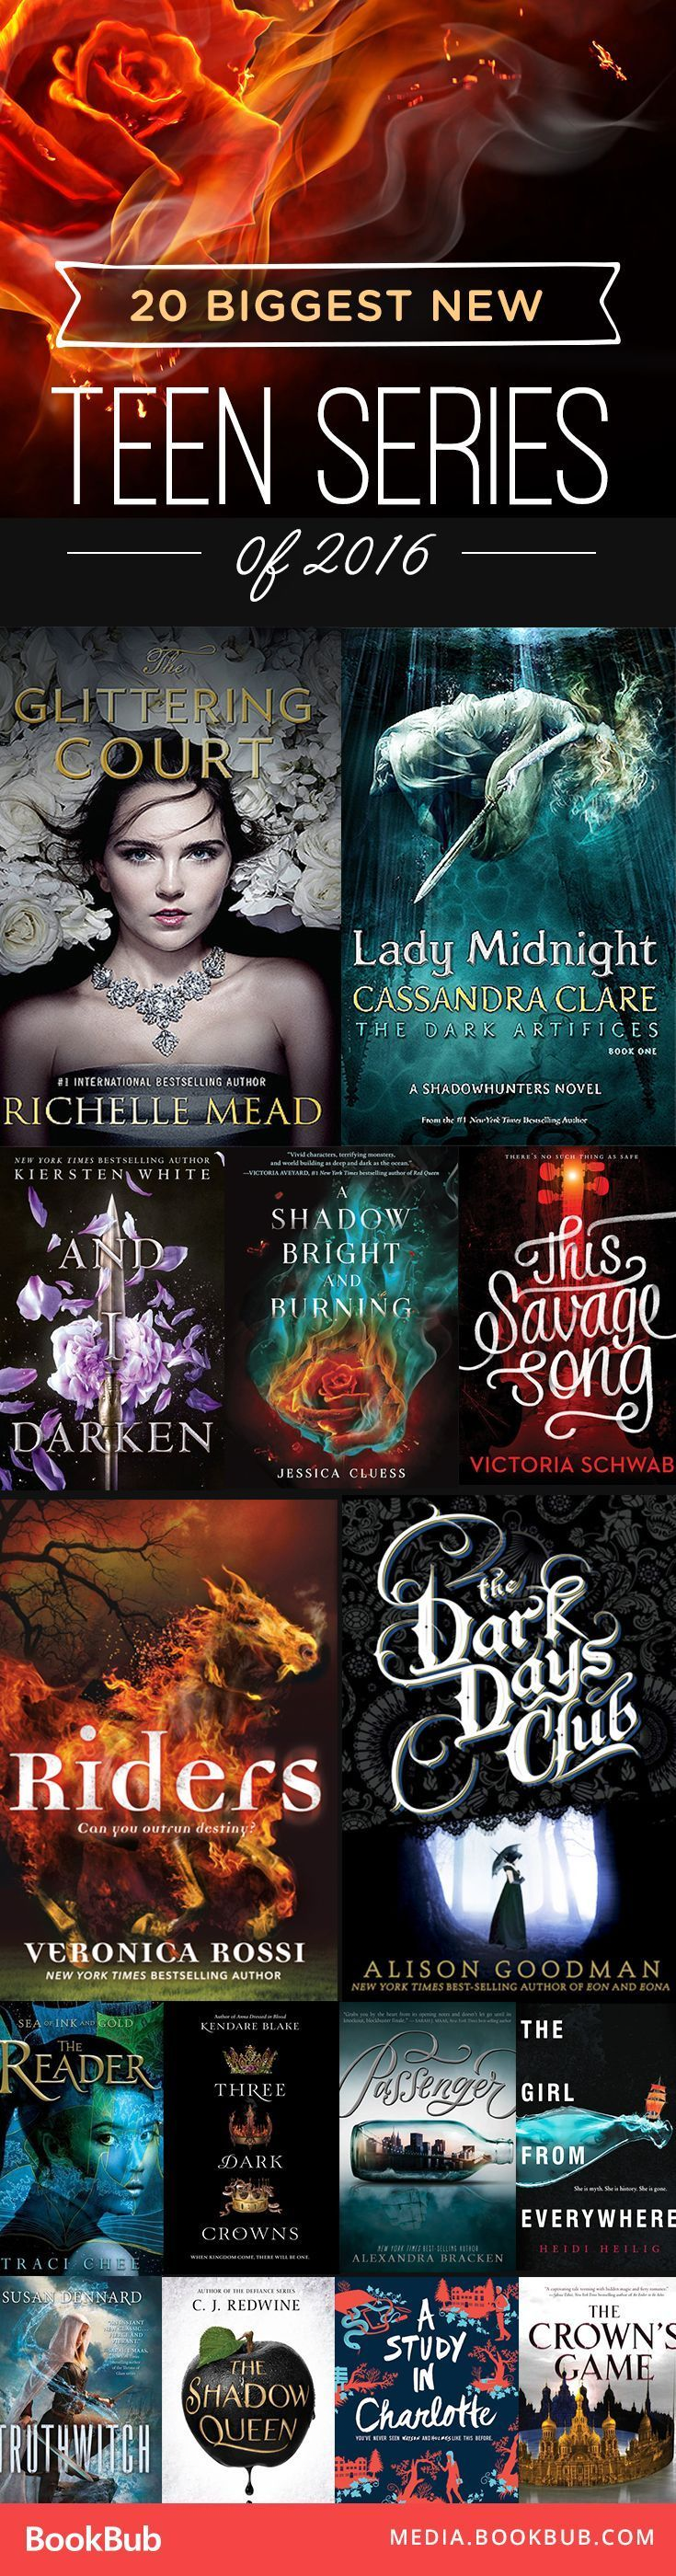 2912 best all about books images on pinterest thoughts book 20 biggest teen series that launched in 2016 fandeluxe Images